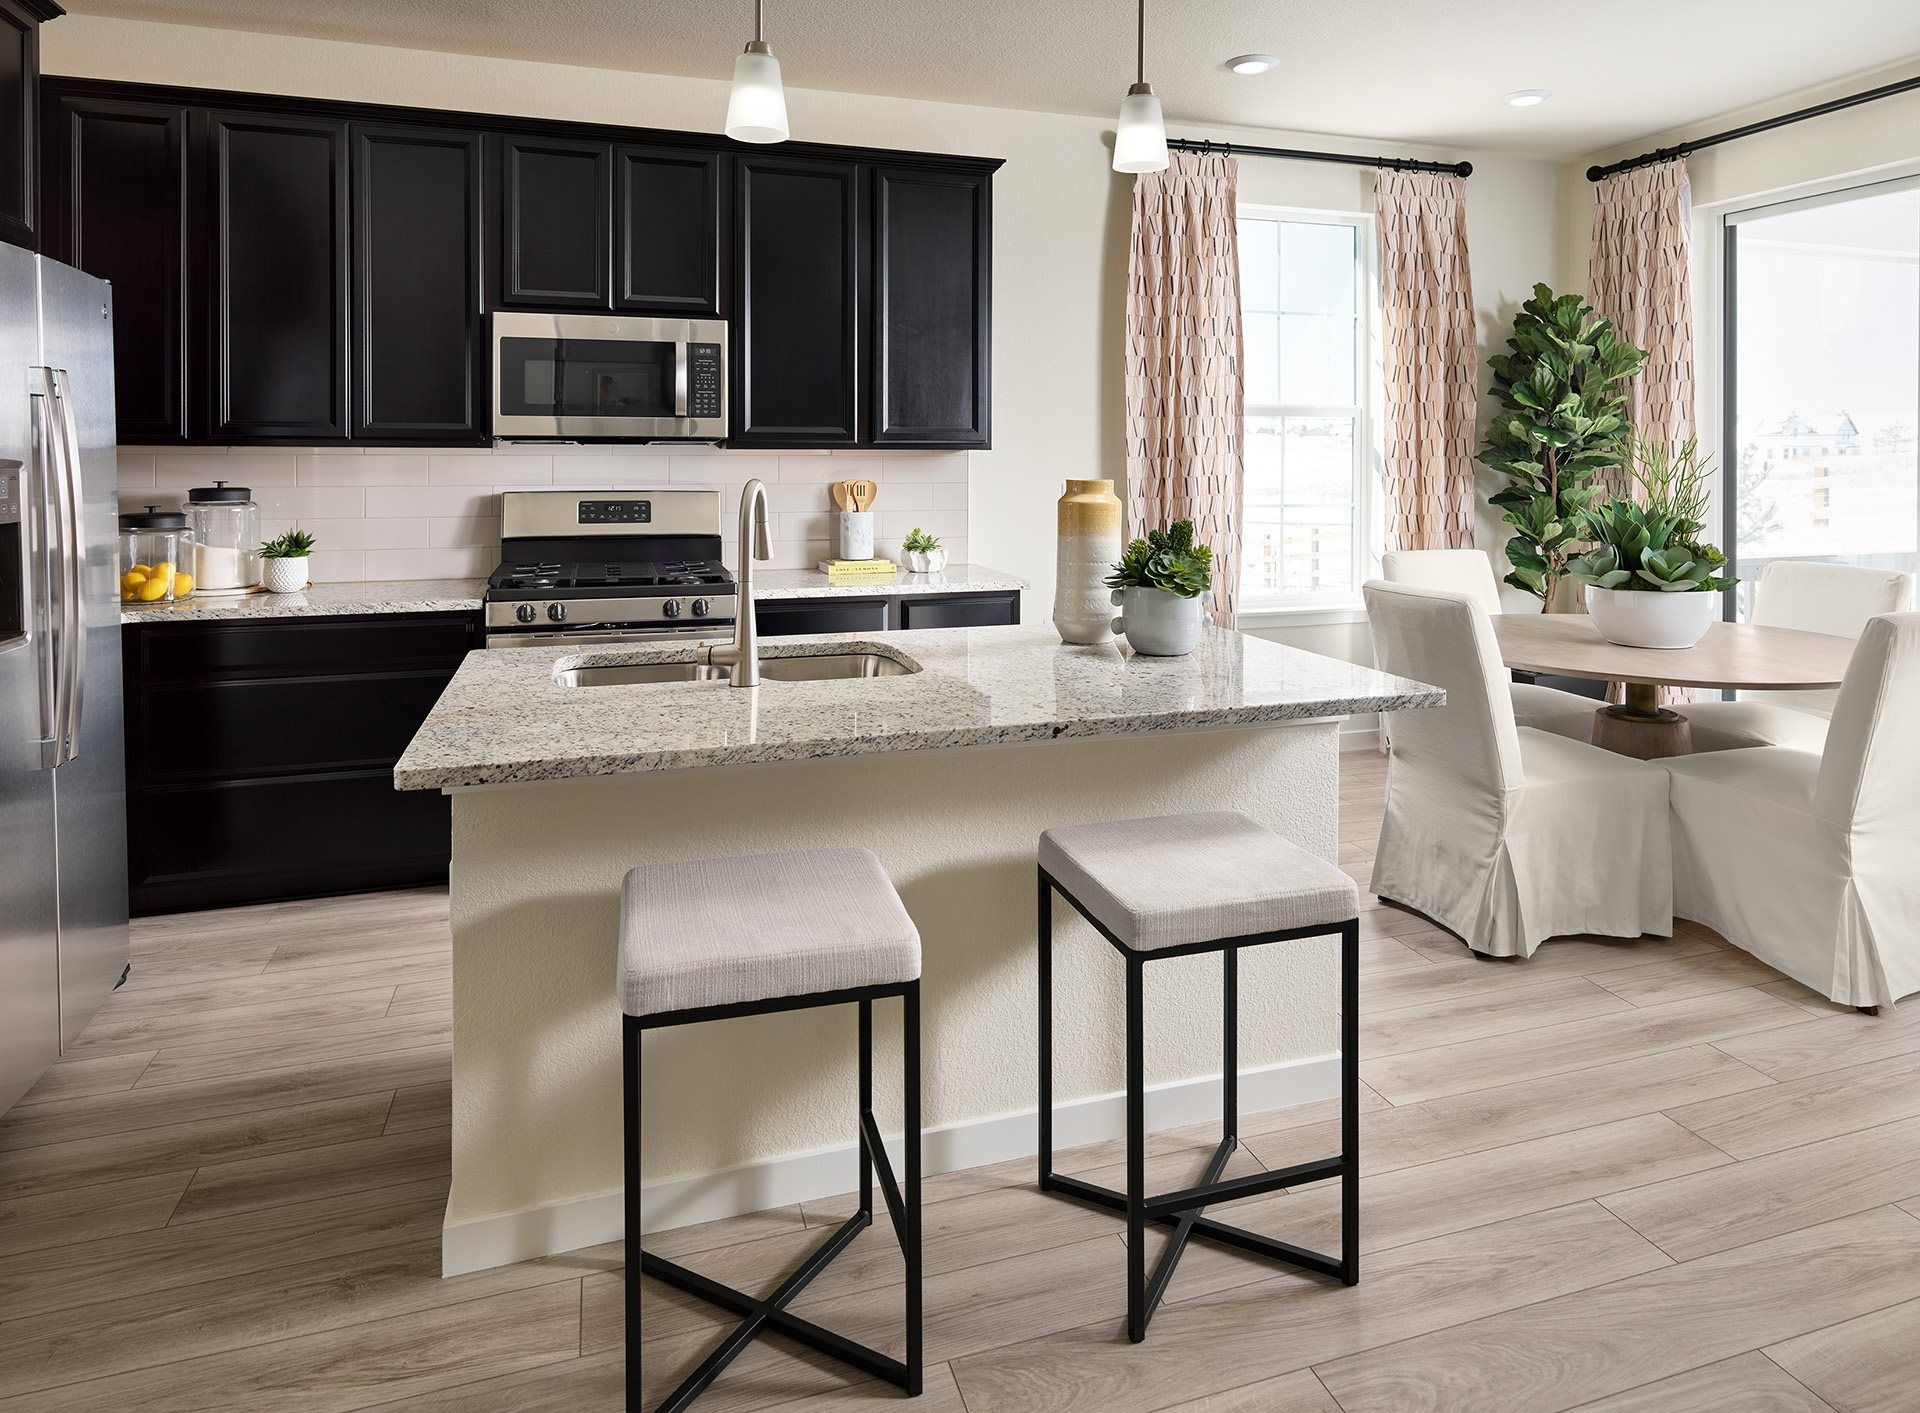 Kitchen featured in the Snowmass By Lennar in Denver, CO